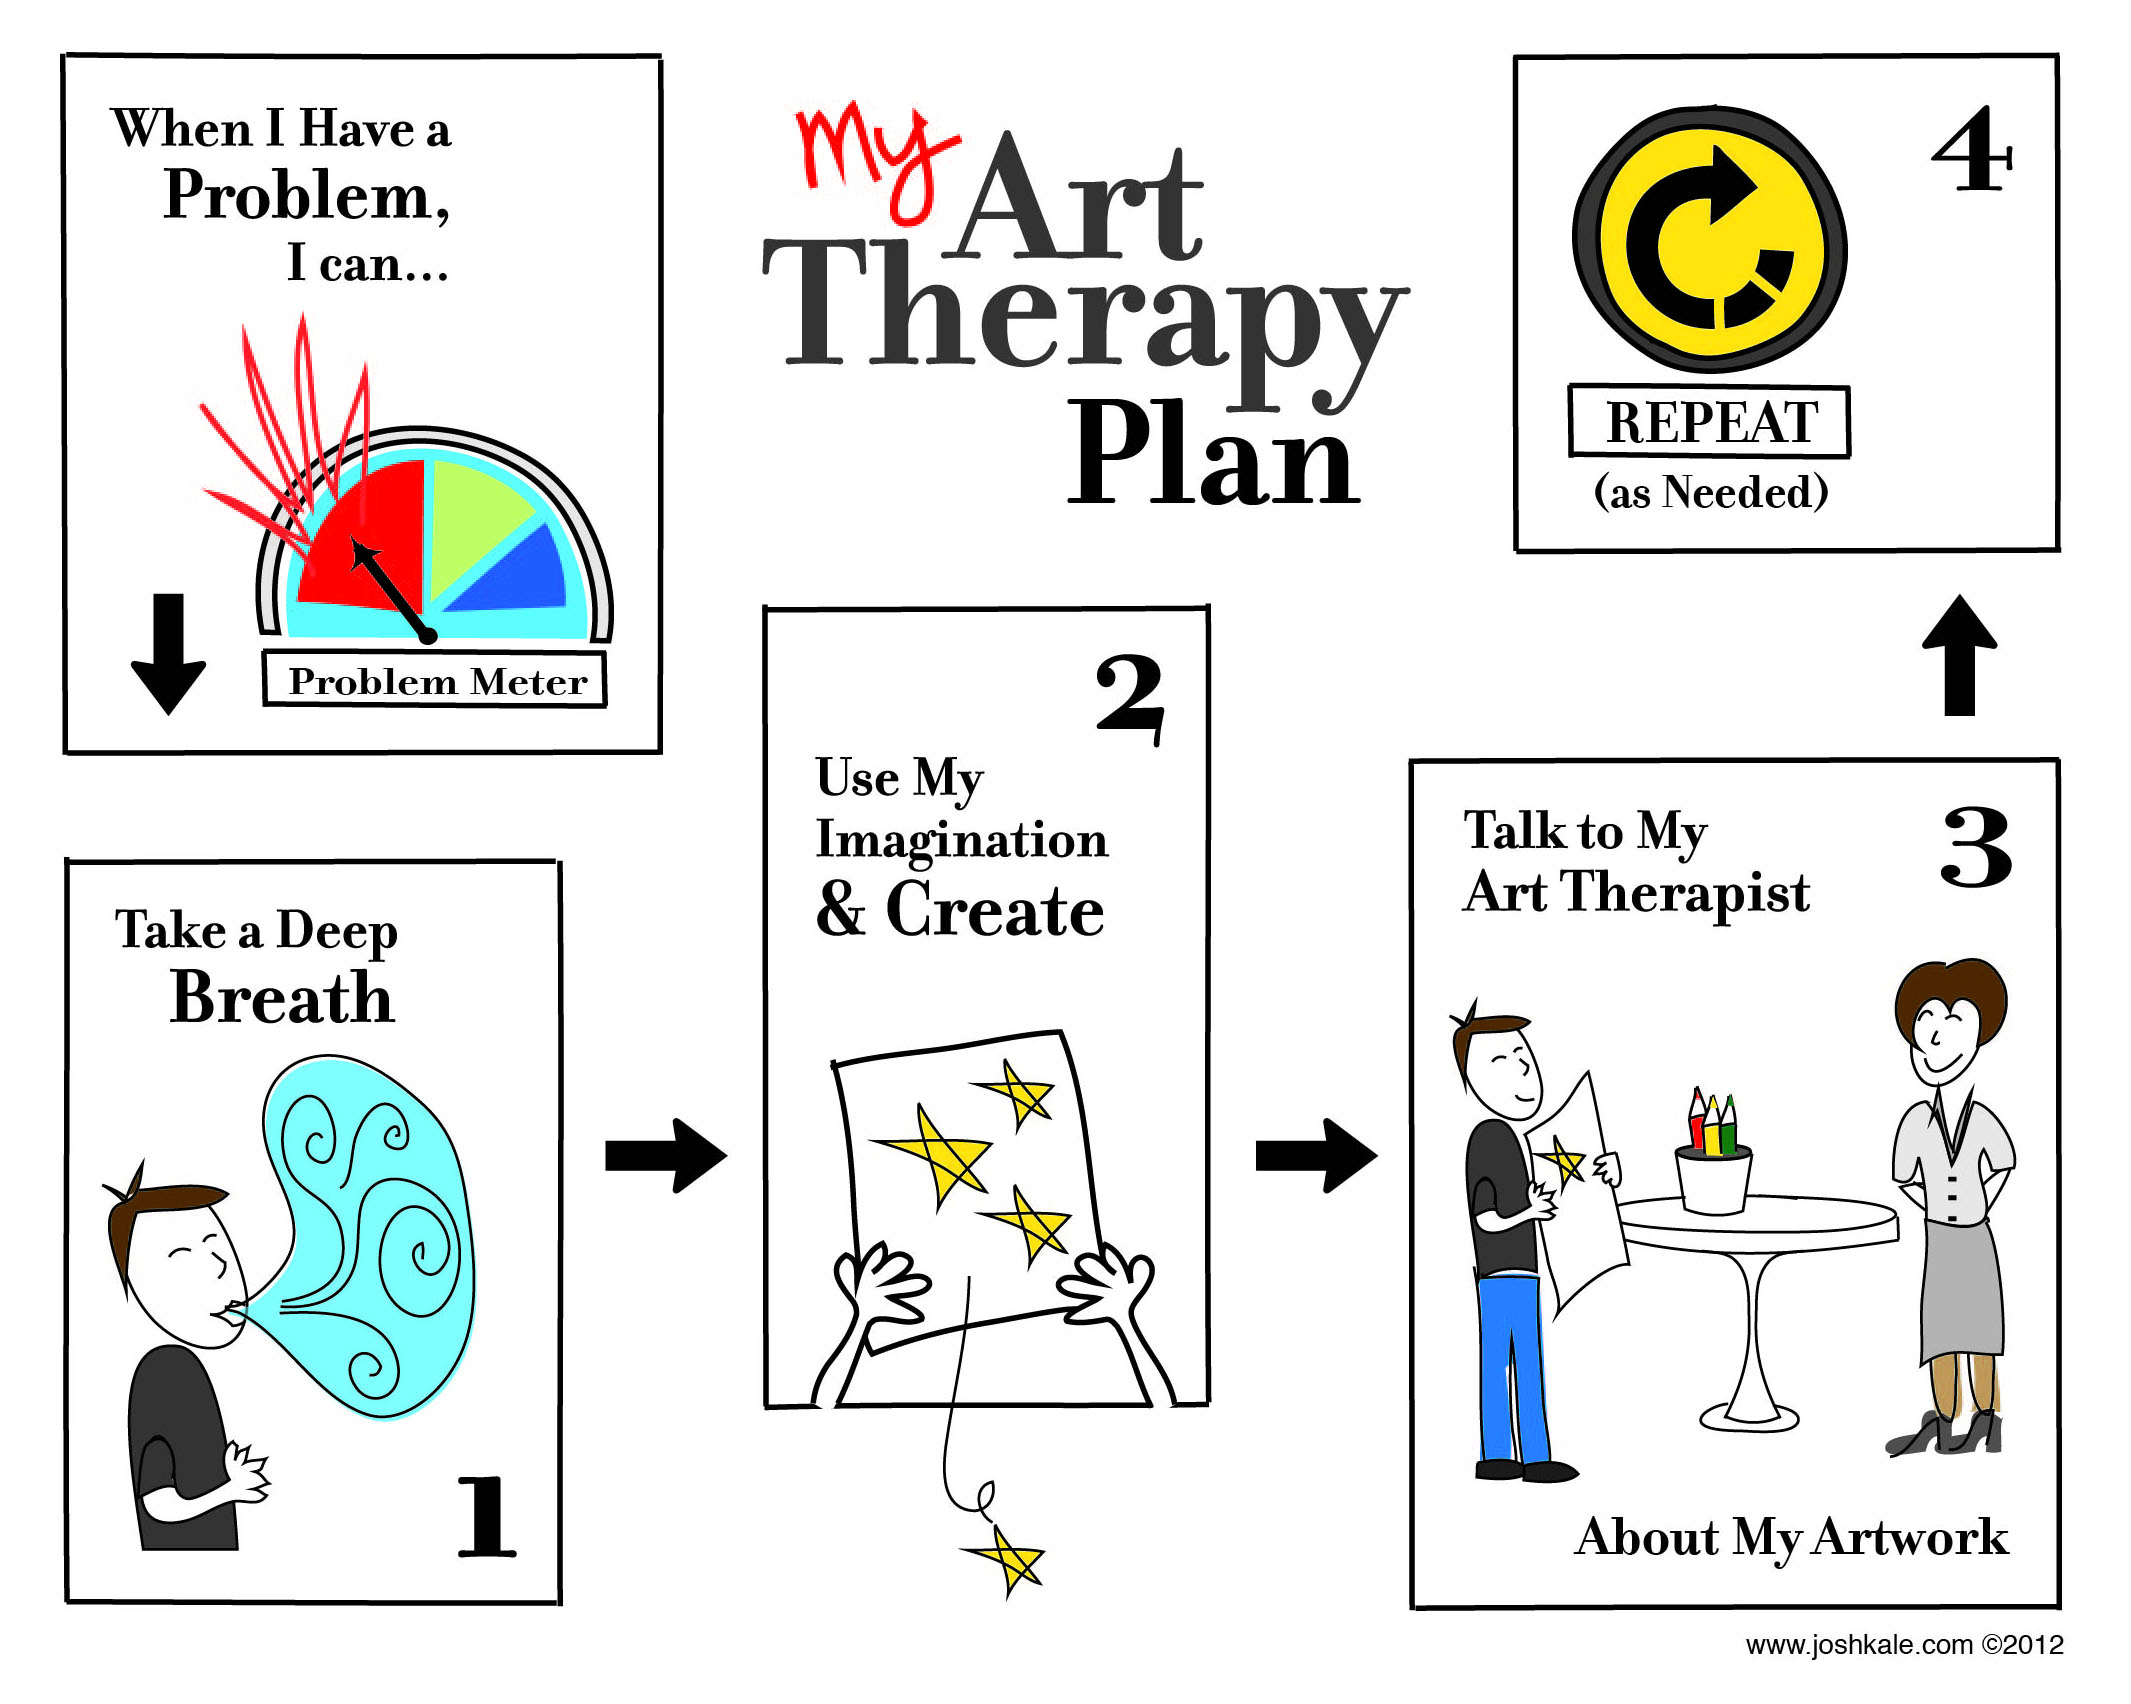 Plan for Art Therapy